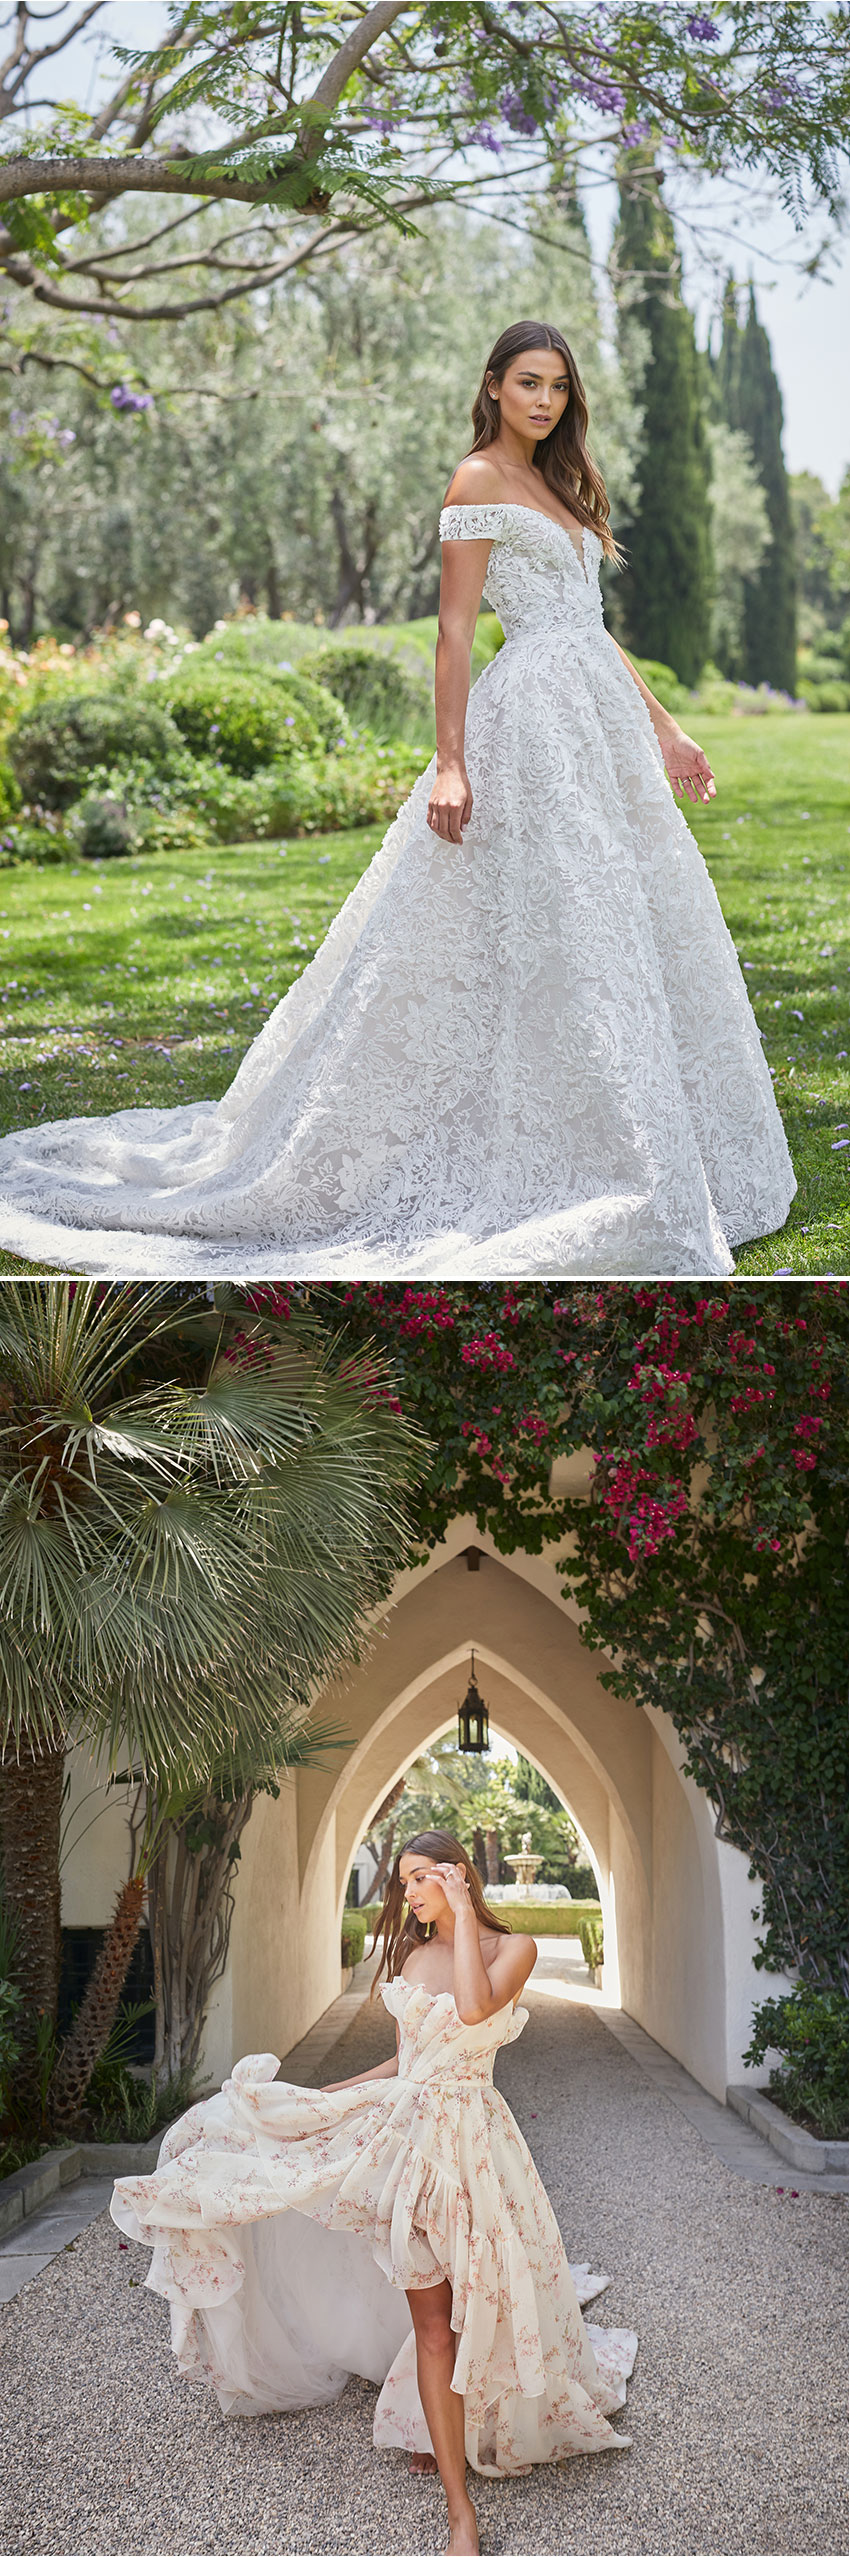 Monique Lhuillier Spring 2021 bridal collection includes voluminous sleeves and deep v-necklines as seen in Perfect Wedding Magazine